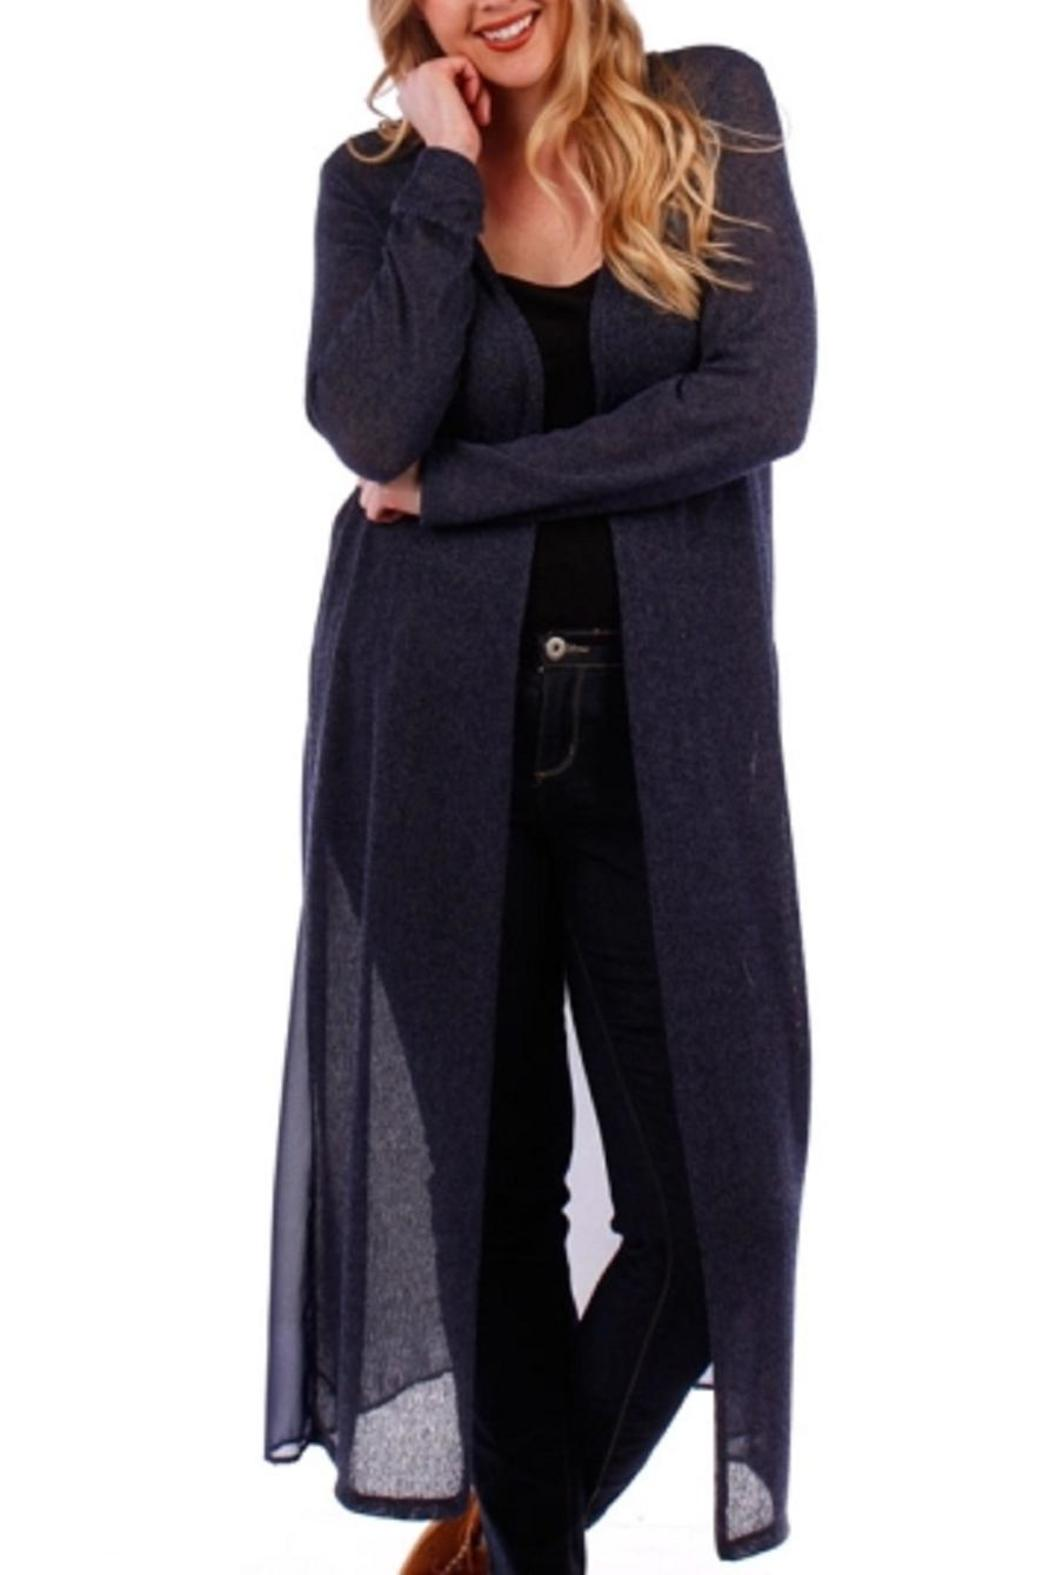 Amy's Allie Long Navy Cardigan from Ohio by Amy's Allie — Shoptiques